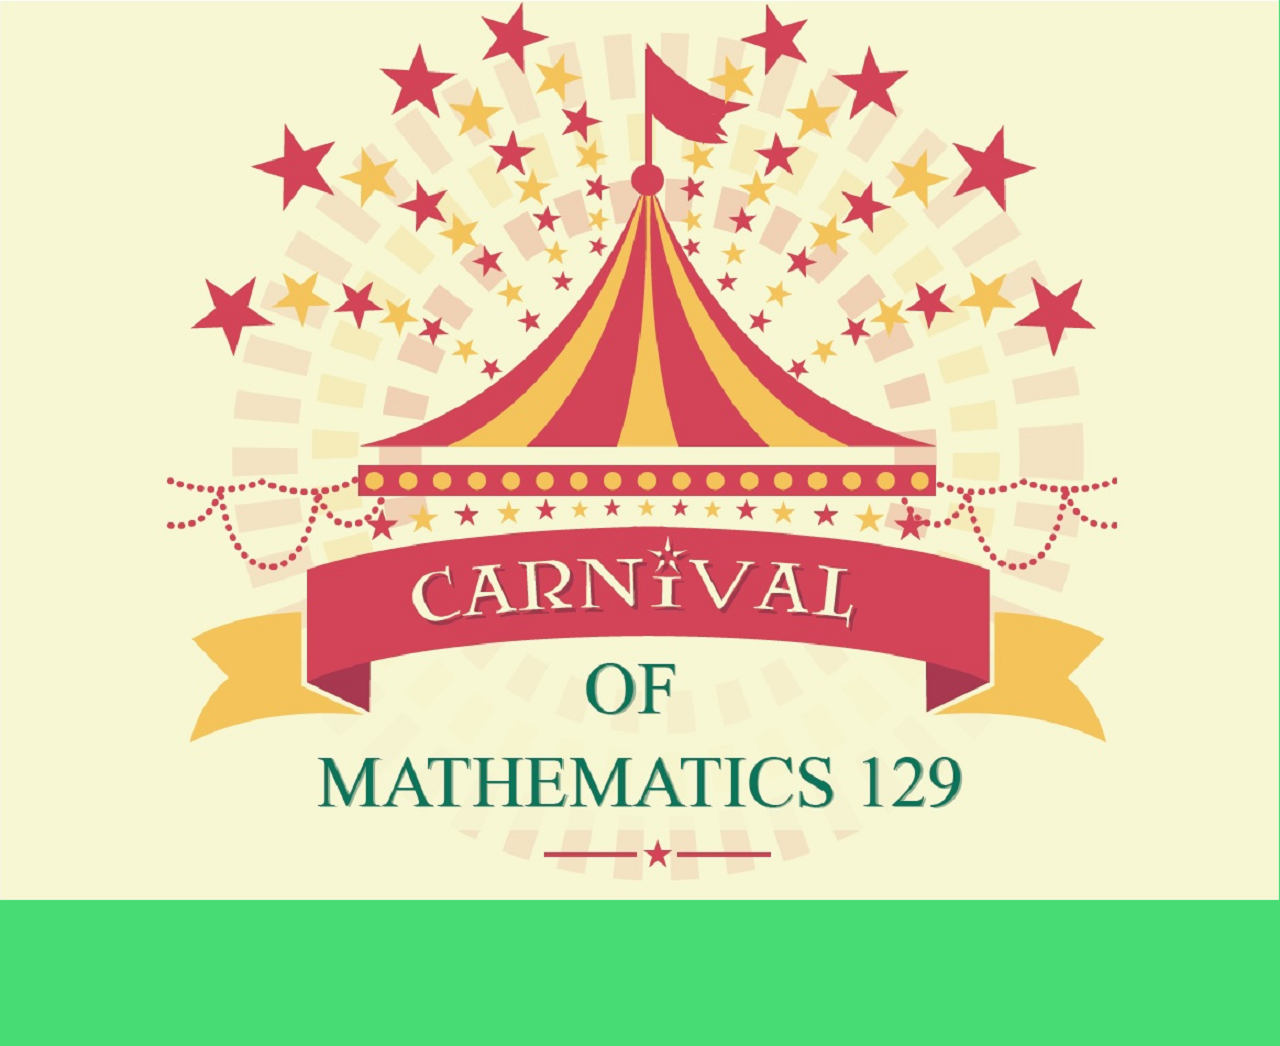 Carnival of Mathematics 129